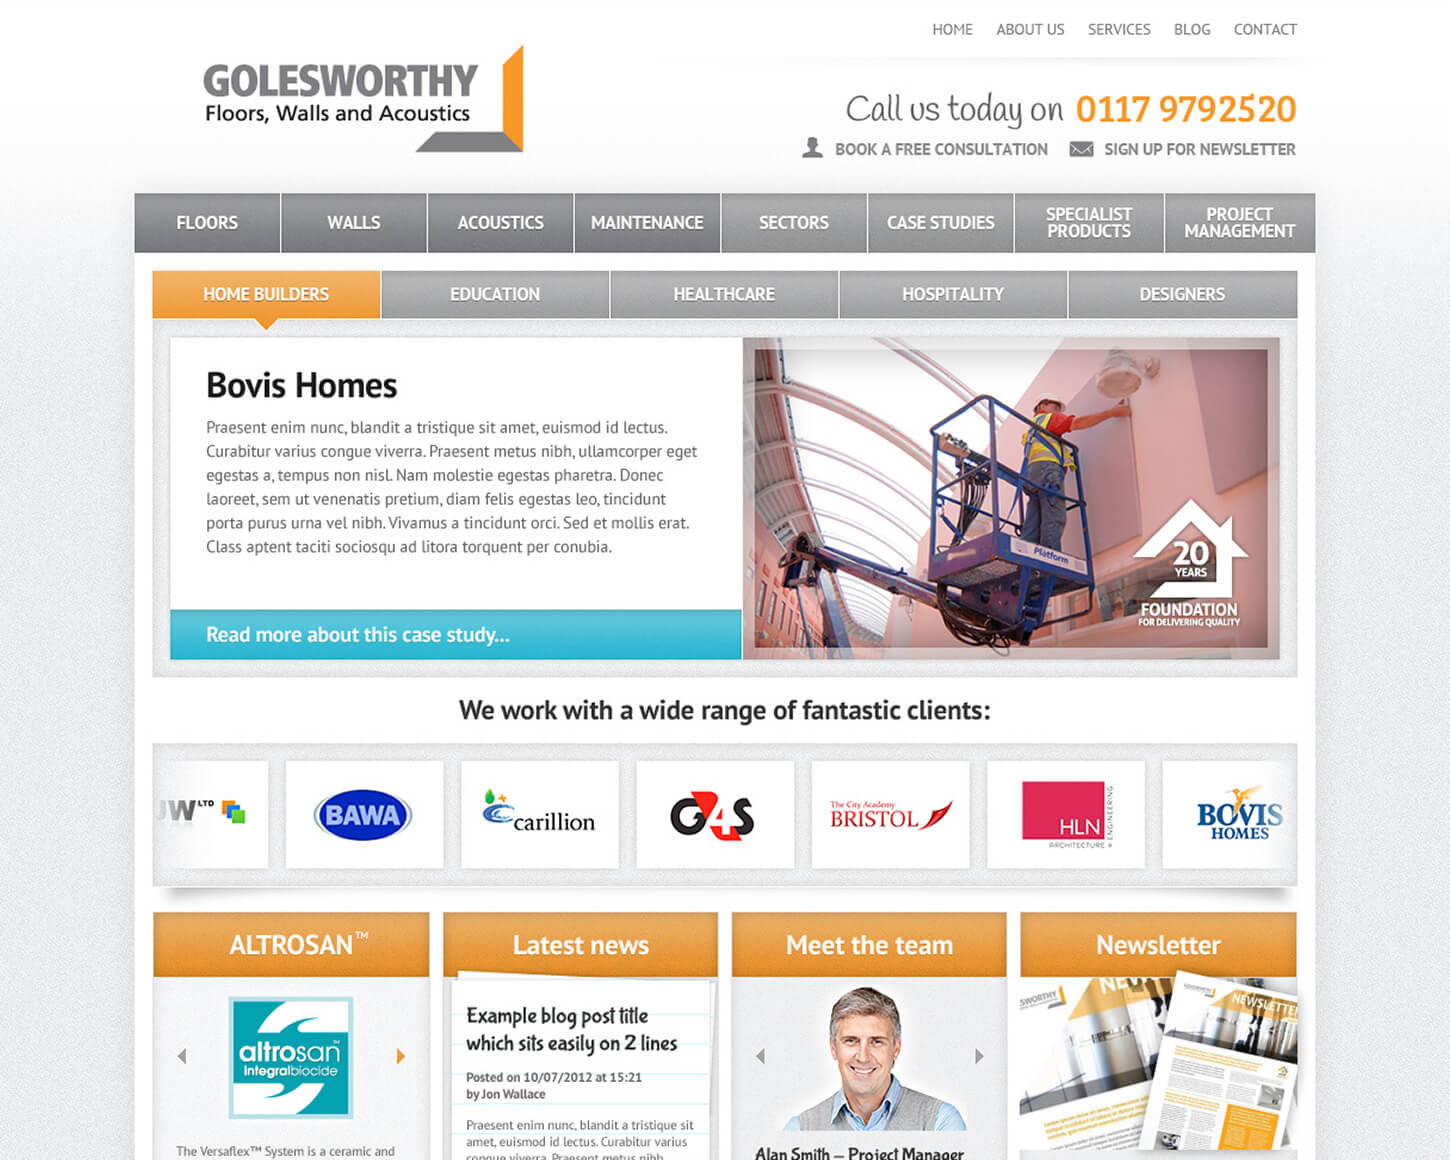 Golesworthy website